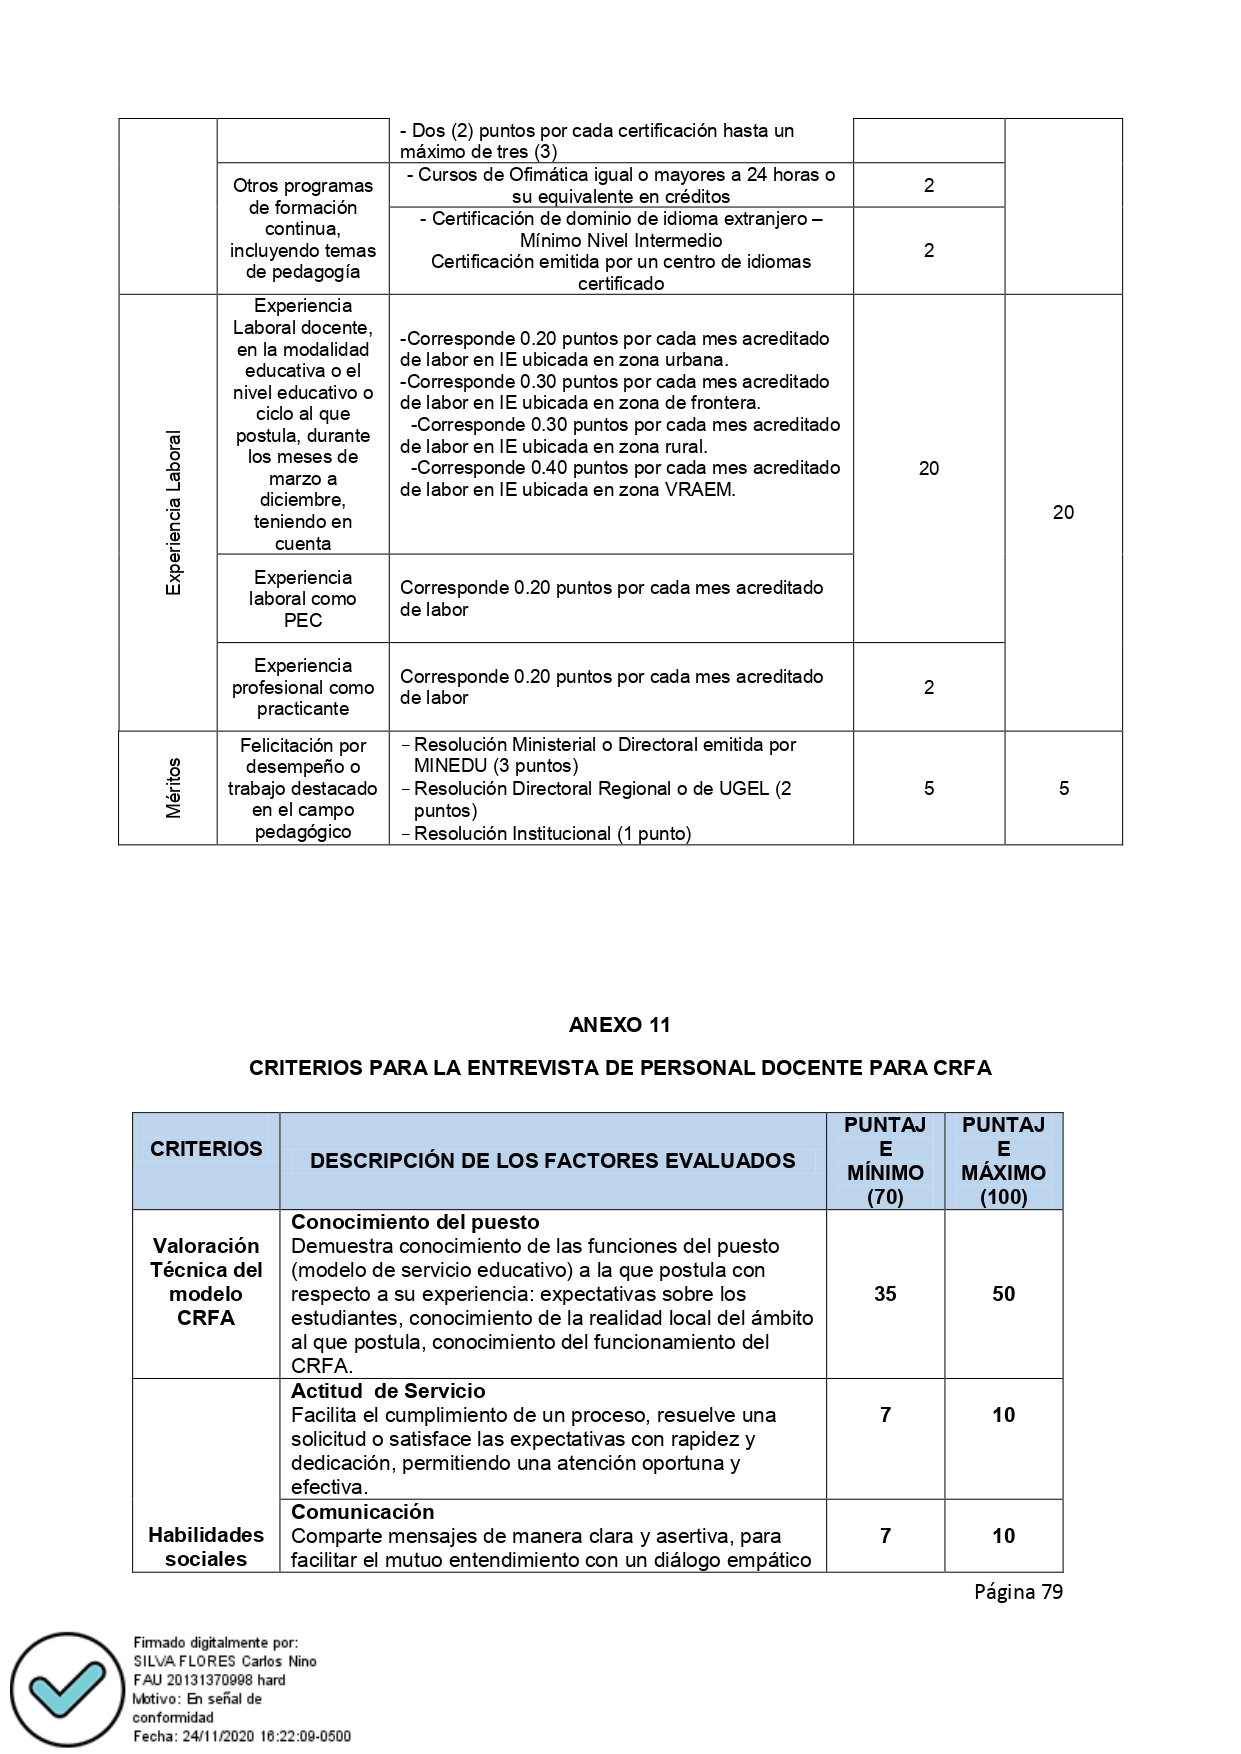 ds-015-2020-minedu-contrato-docente-2021_page-0081